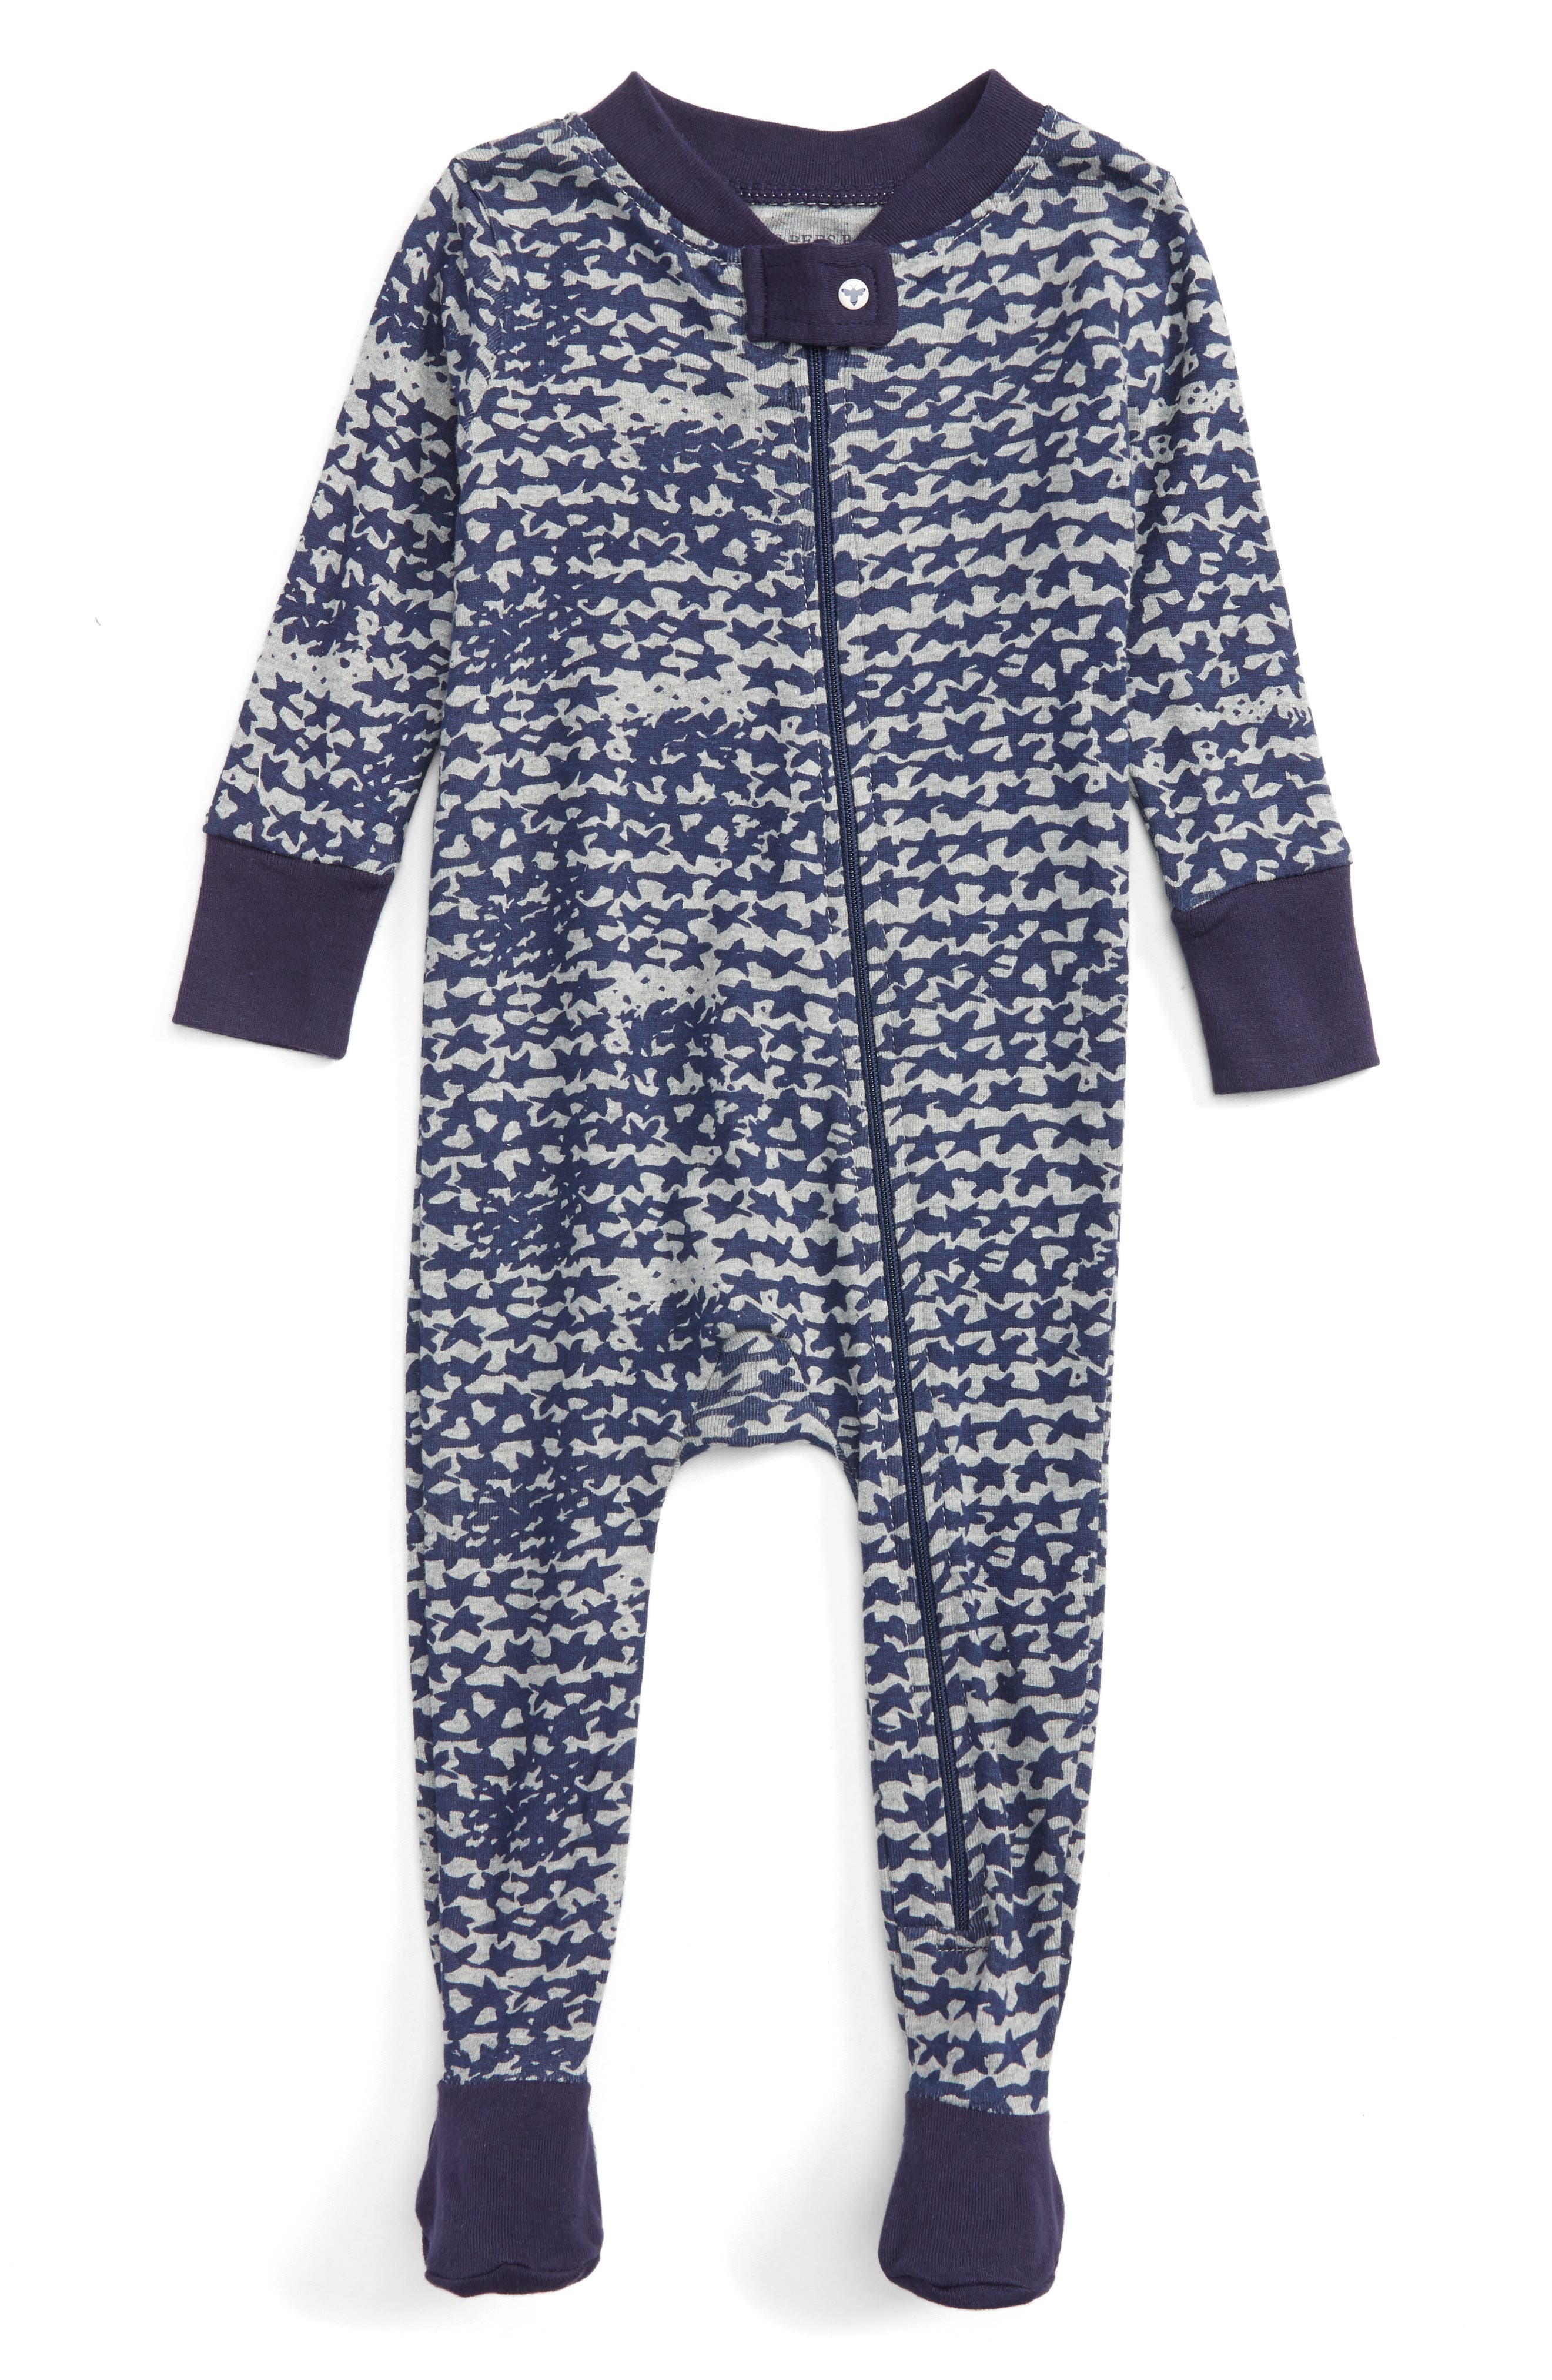 Burt's Bees Baby Star Cluster Organic Cotton Fitted One-Piece Pajamas (Baby Boys)